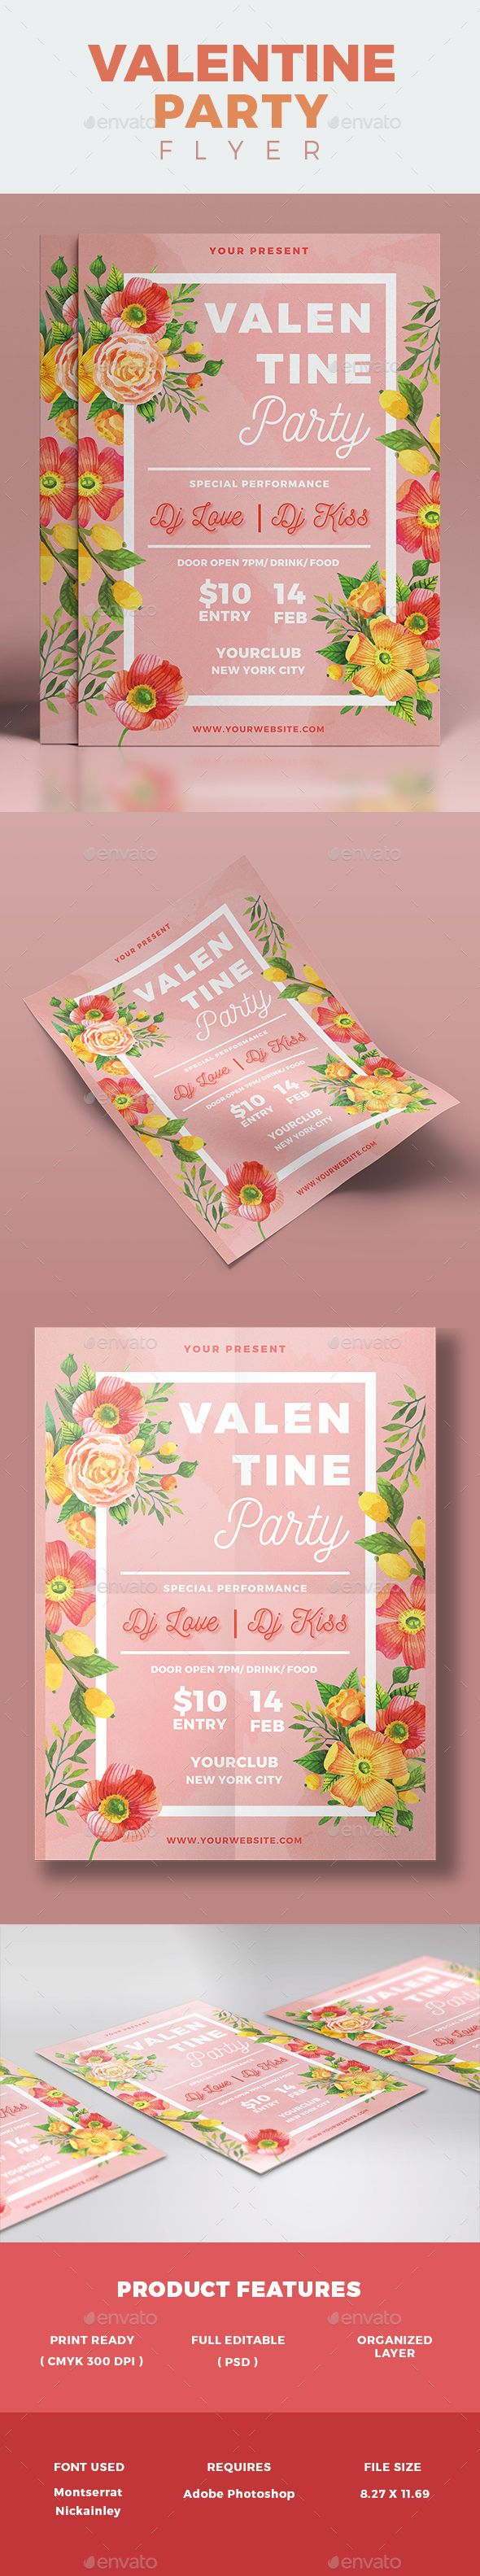 Valentine's Day Party Flyer Template PSD